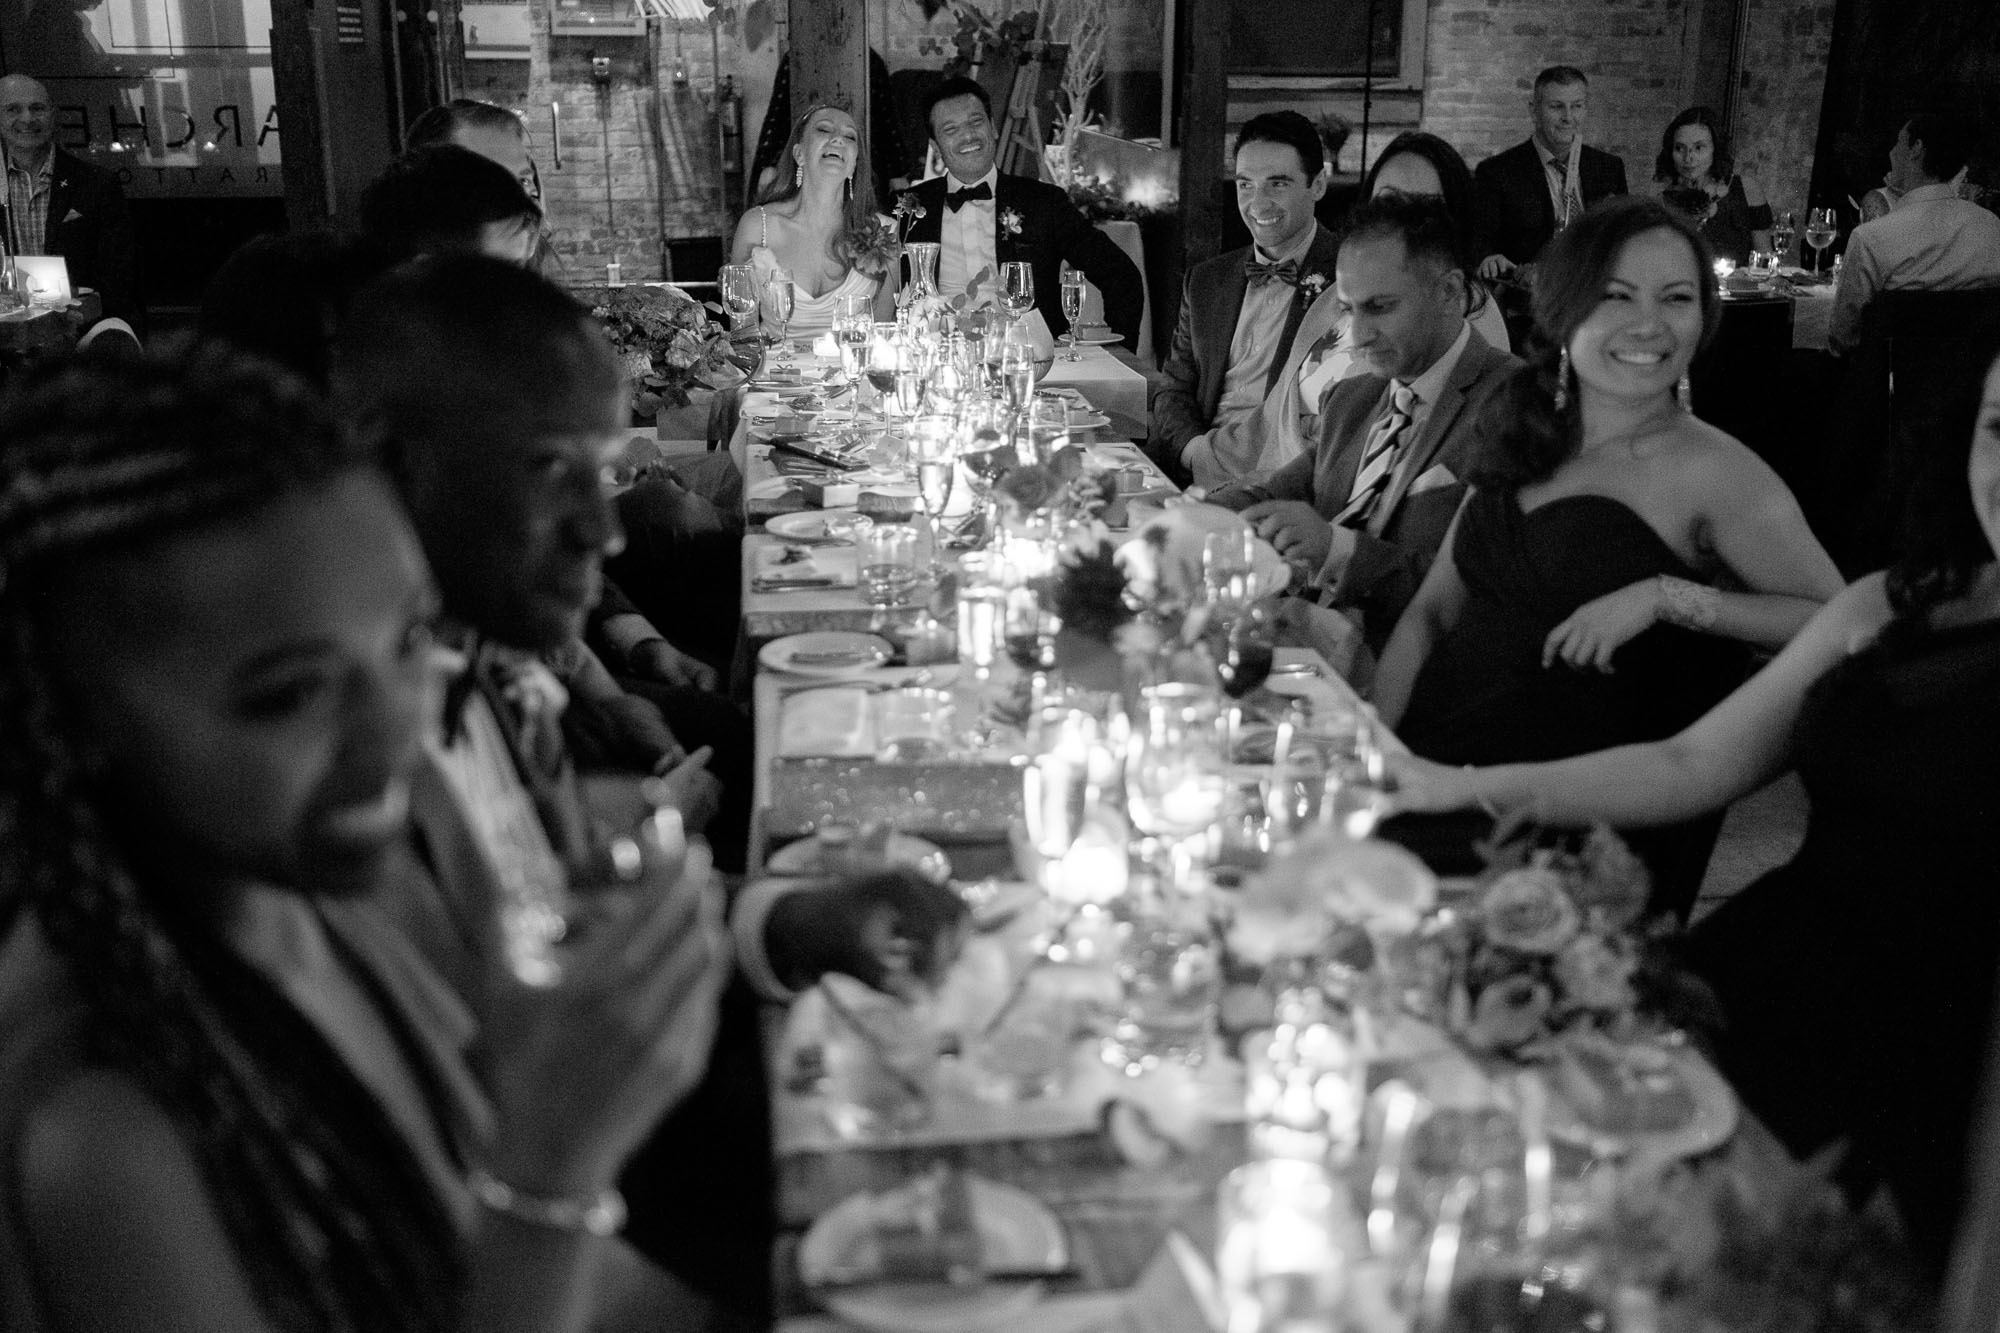 Cindy + Enrico are captured enjoying one of the speeches during their wedding reception at Archeo.